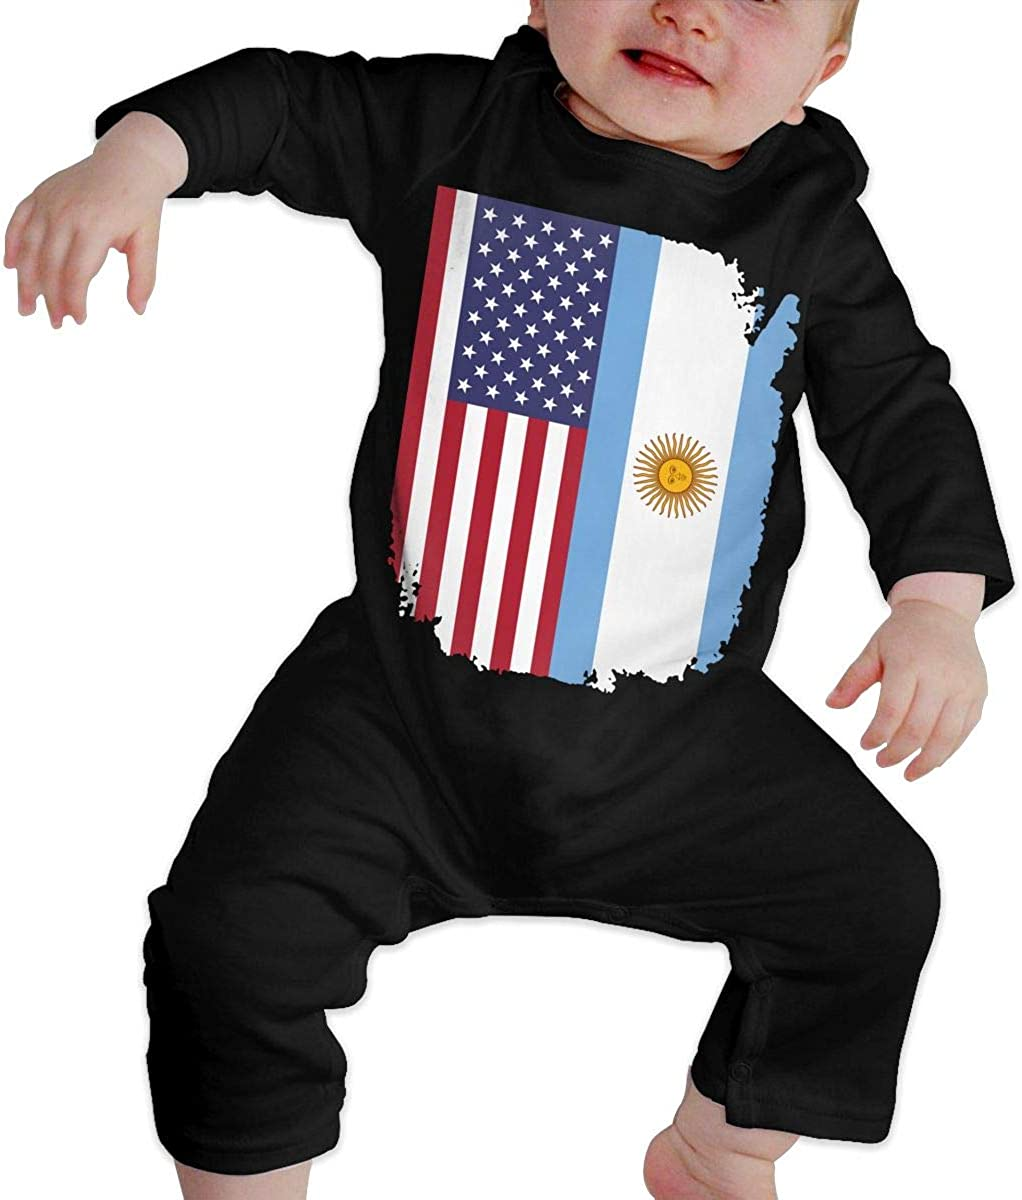 YELTY6F American Argentina Flag Printed Newborn Baby Boy Girl Jumpsuit Long Sleeve Outfits Black